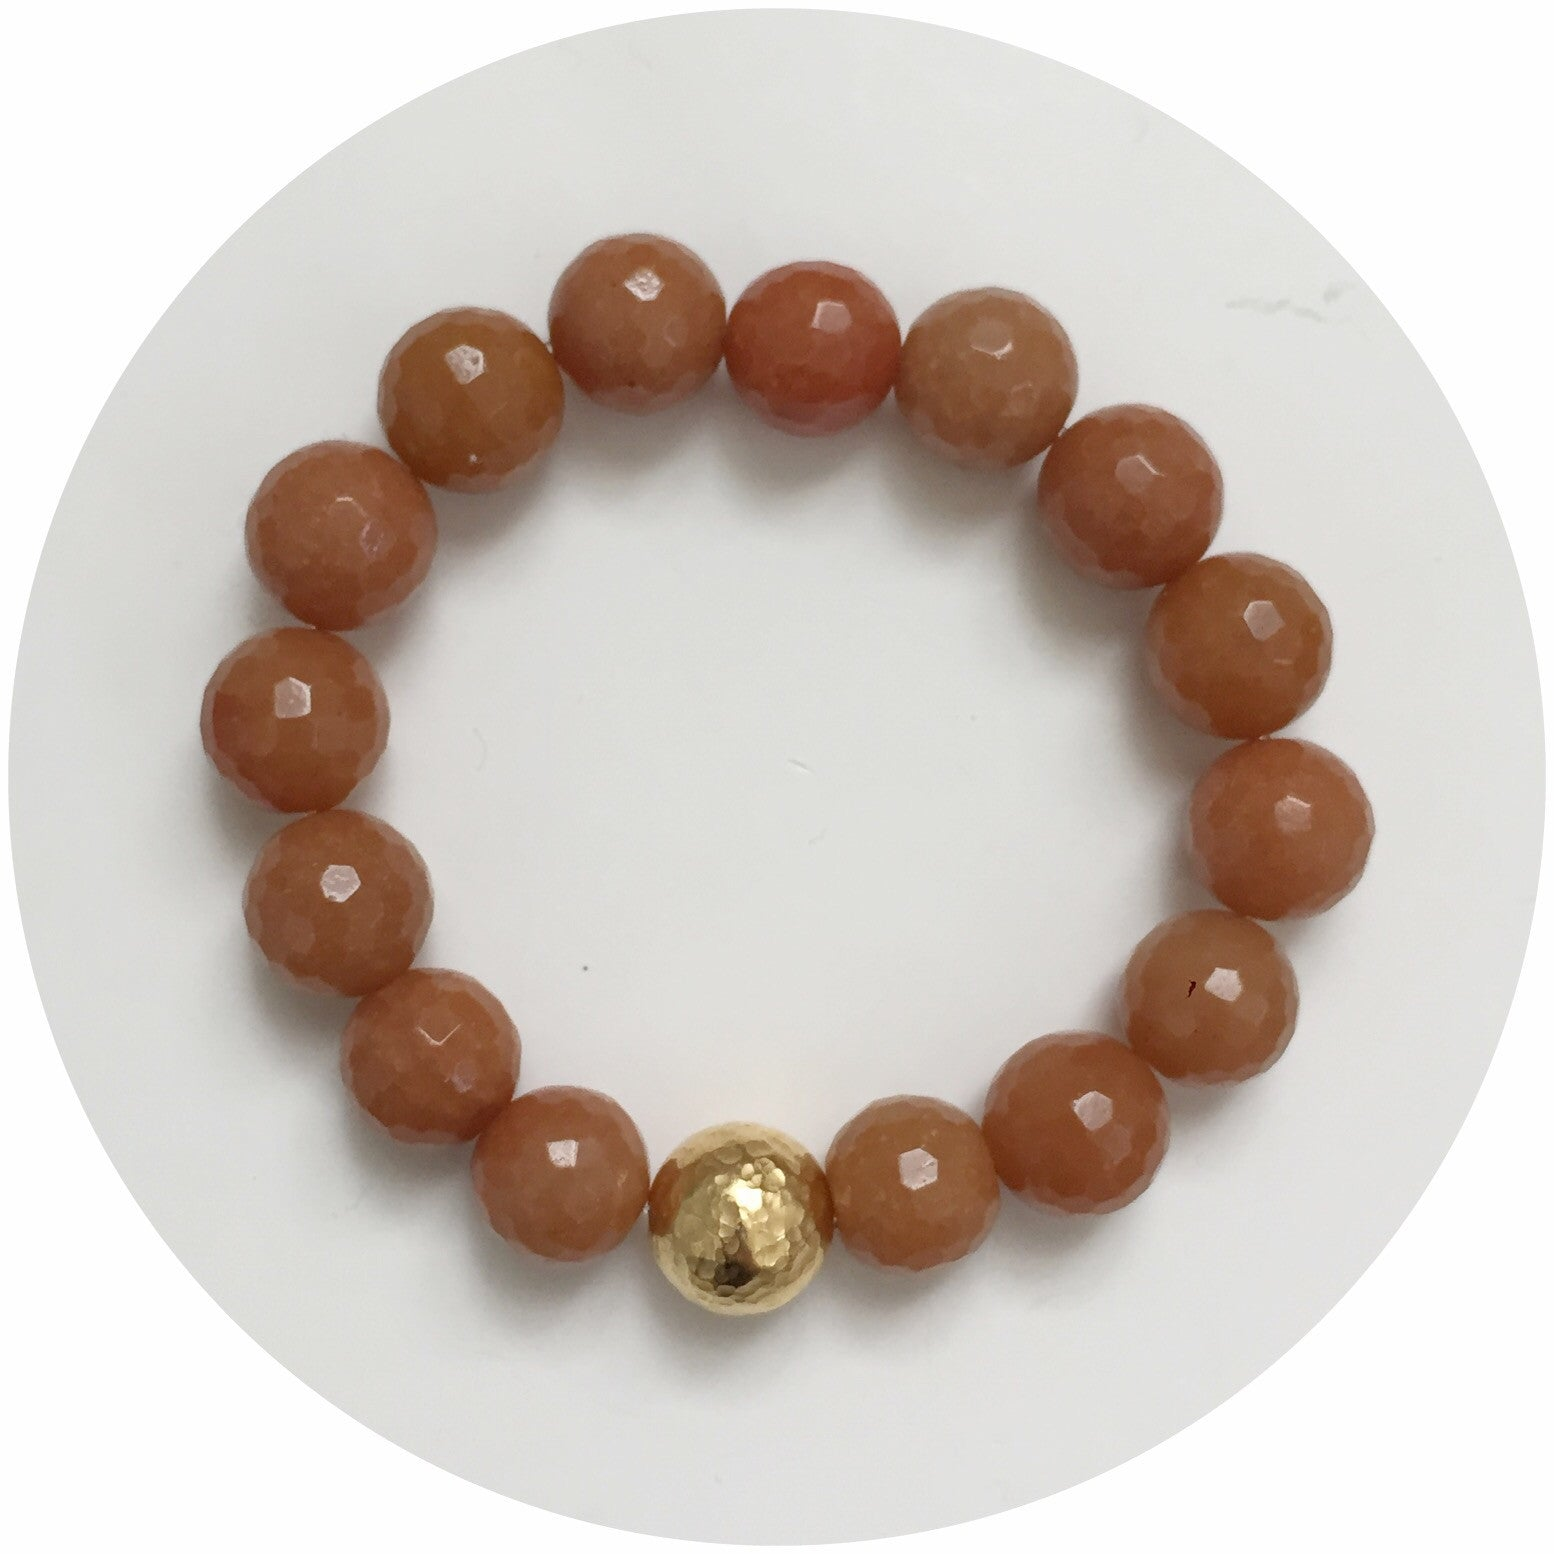 Brown Aventurine with Hammered Gold Accent - Oriana Lamarca LLC